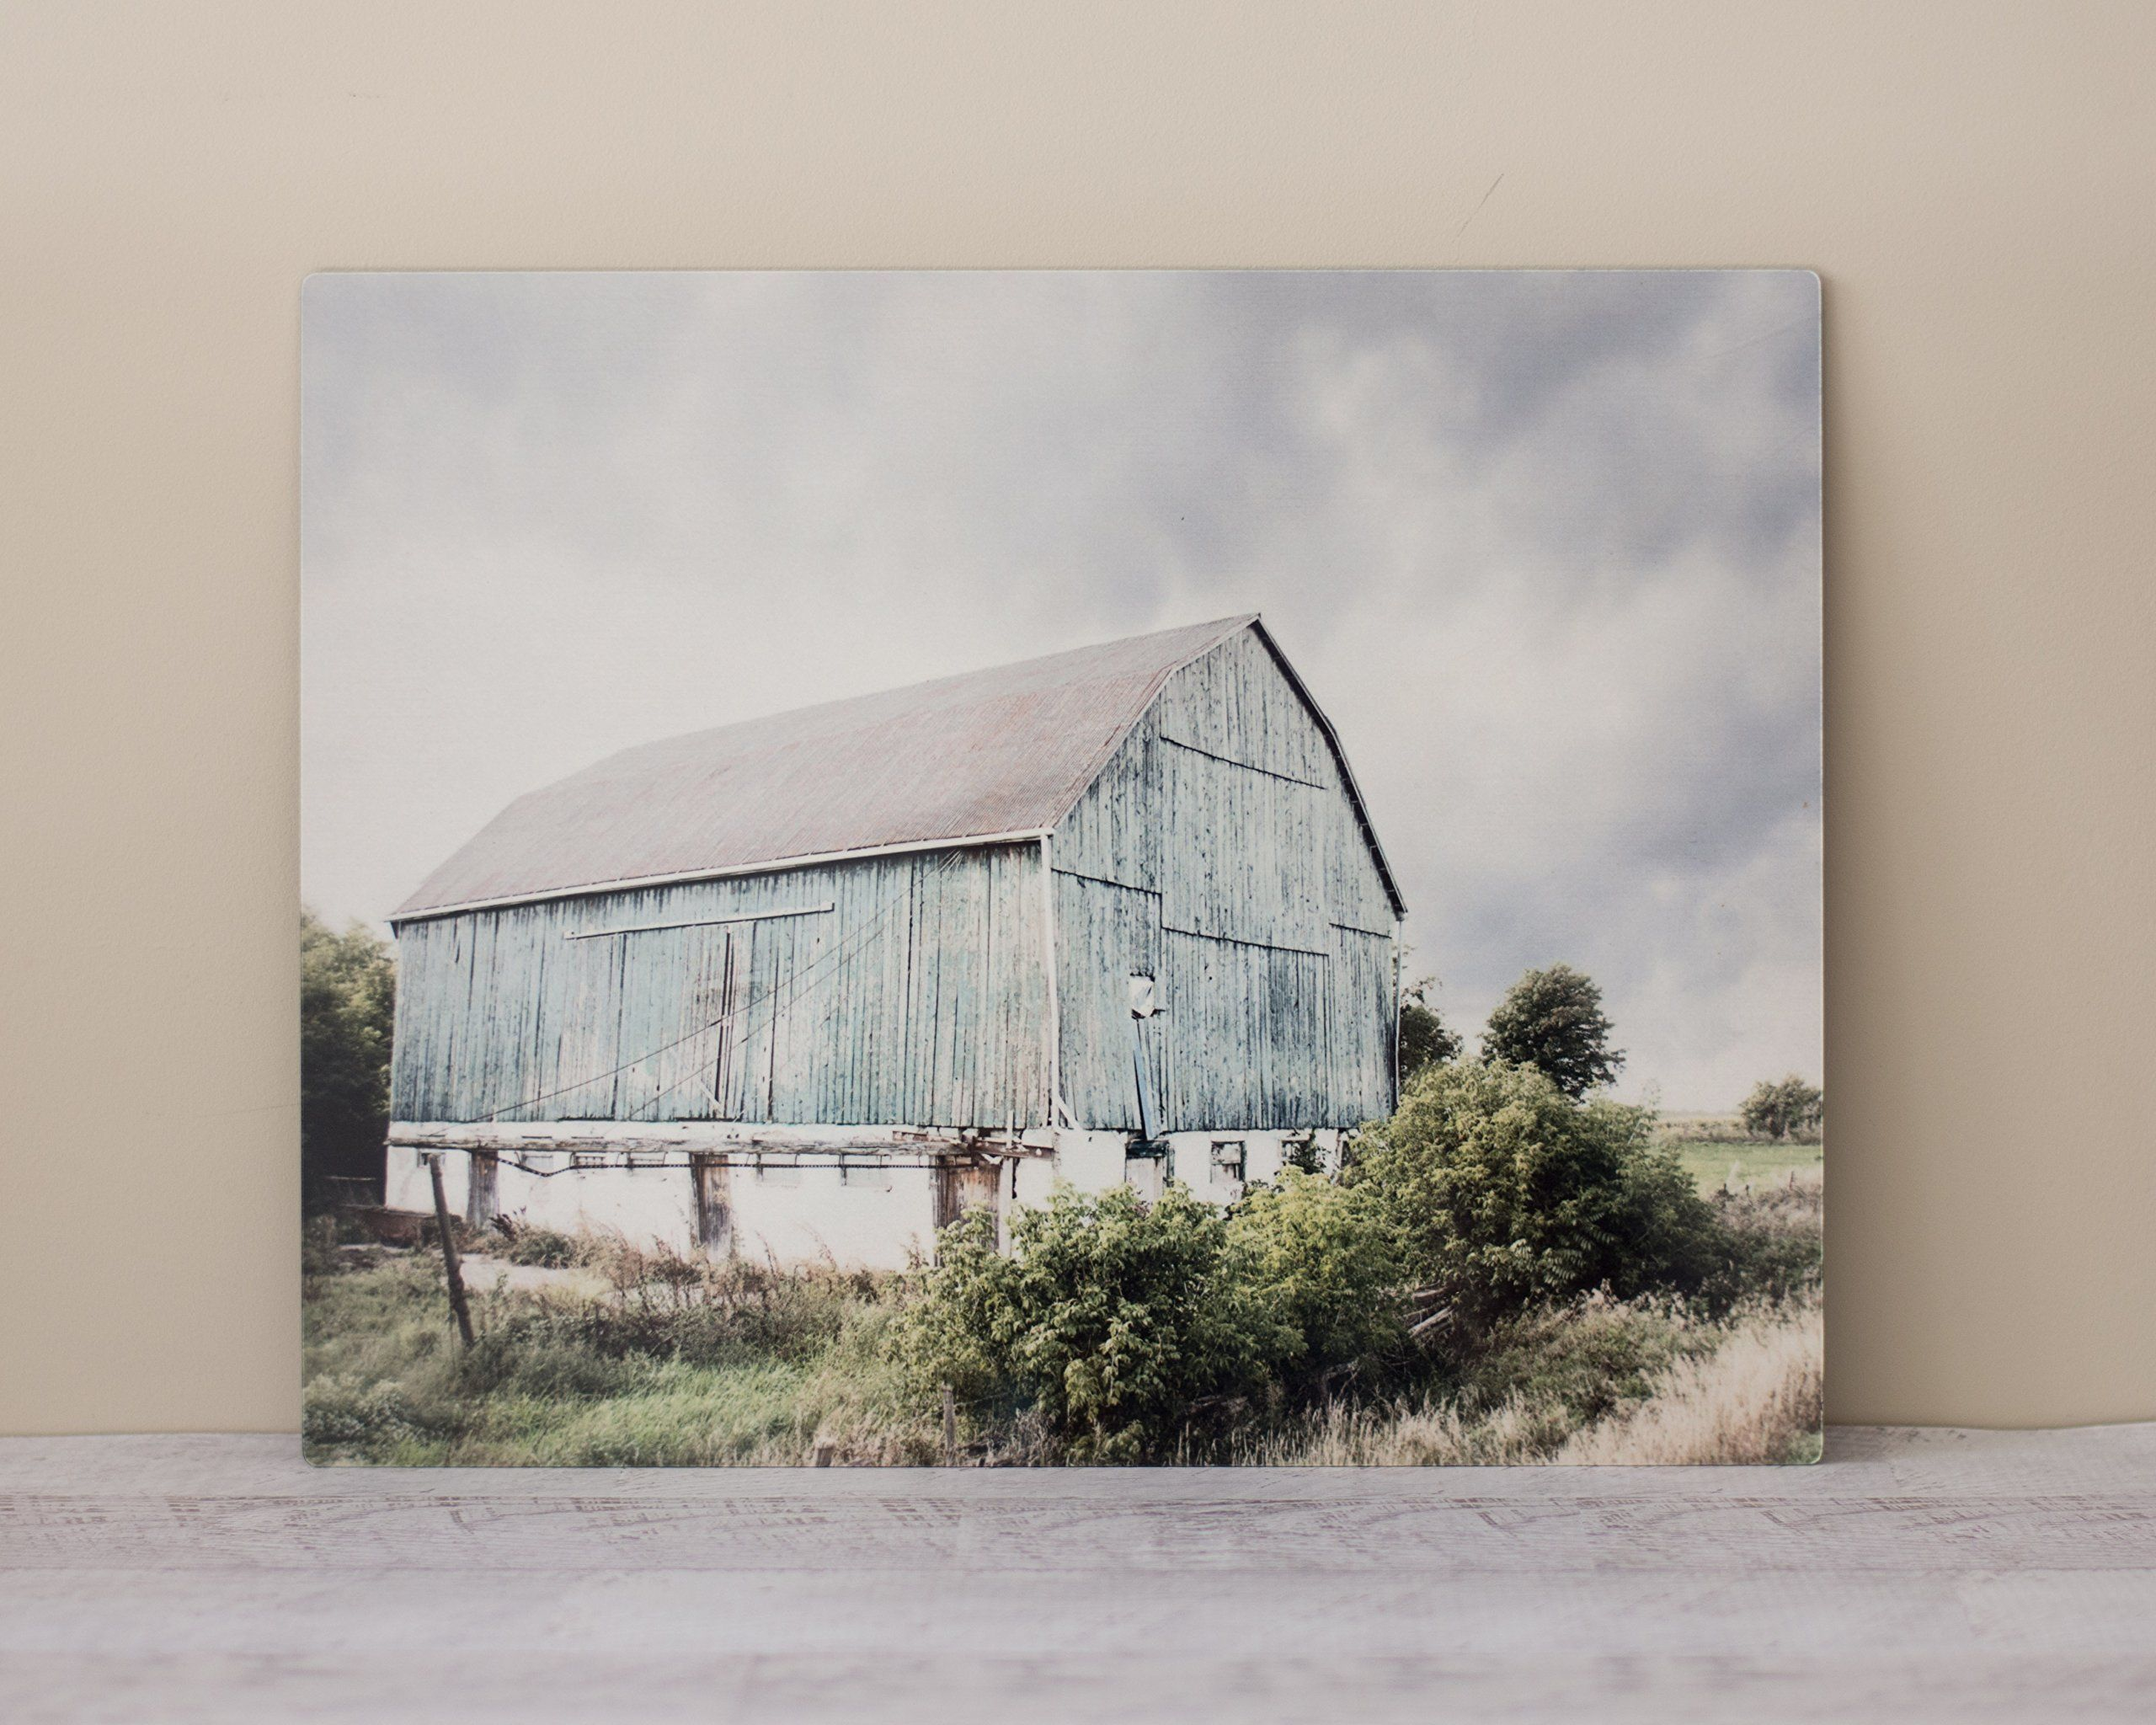 Modern Country Artwork, 11x14 Horizontal Metal Print. This 11x14 ready to hang aluminum metal print features an photograph of a rustic turqoise barn. The image is printed on 0.1 inch thick aluminum. The print is coated with a protective reflective finish bringing an ultra-modern feel to your walls. A 1/2 inch float mount notched block hanger is installed for easy hanging. The piece is finished of with rounded corners.